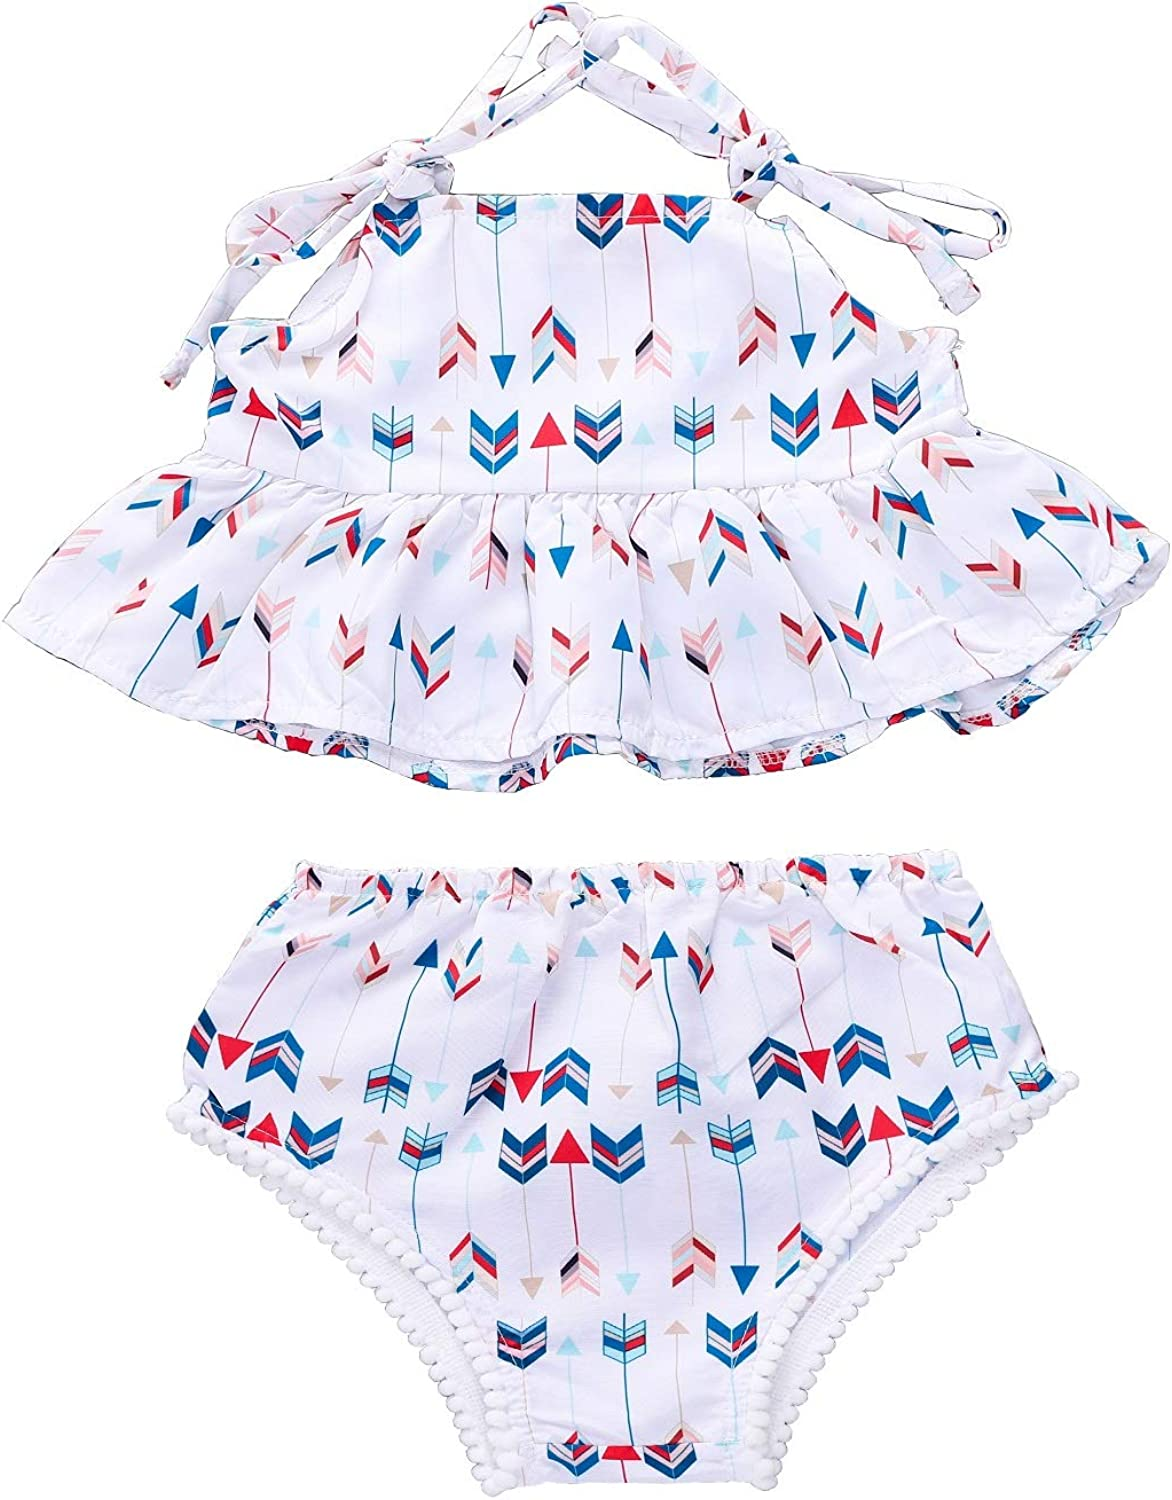 Floral Print Shorts Summer Outfits 0-4T YOUNGER TREE Infant Toddler Baby Girl Shorts Sets Ruffle Sleeveless Top